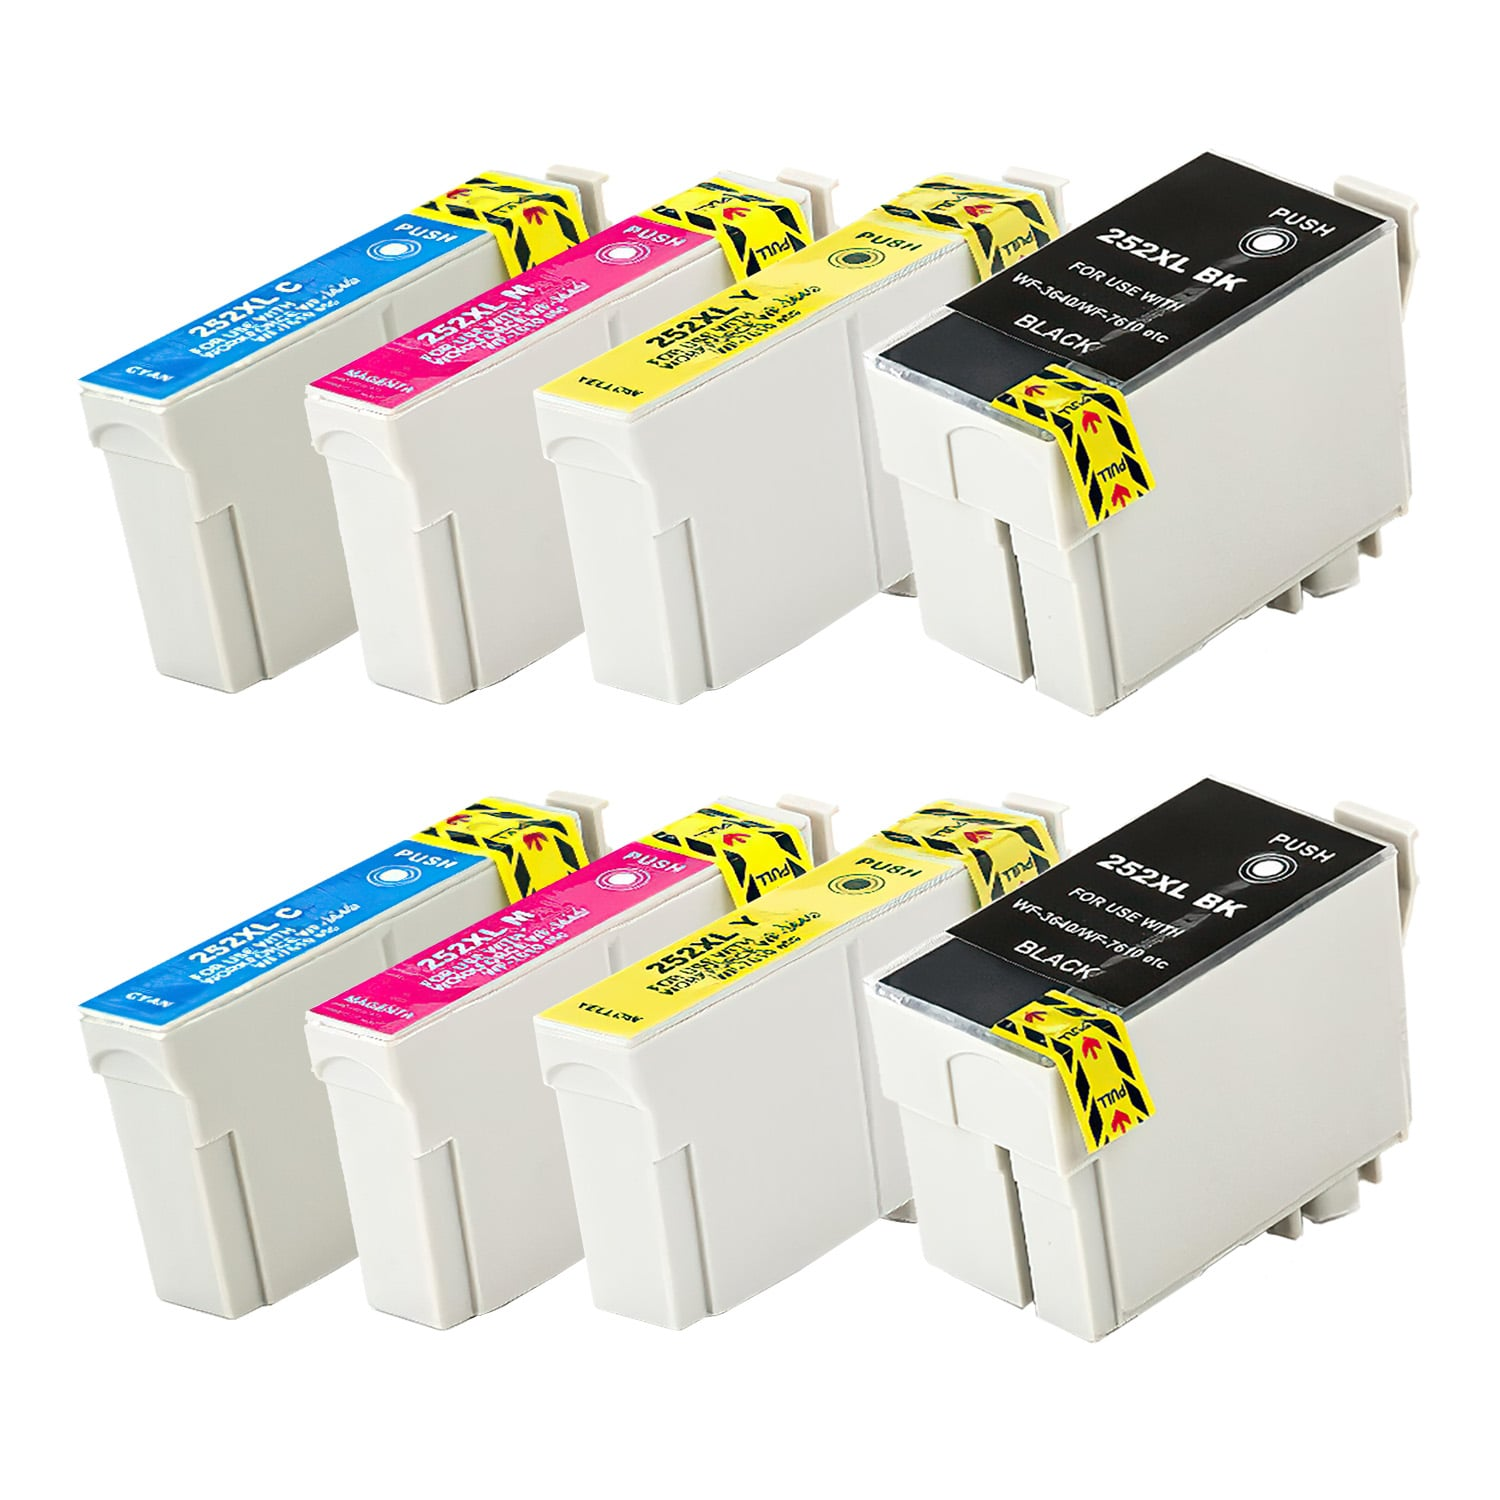 Remanufactured Epson 252XL Inkjet High Capacity Pack - 8 Cartridges